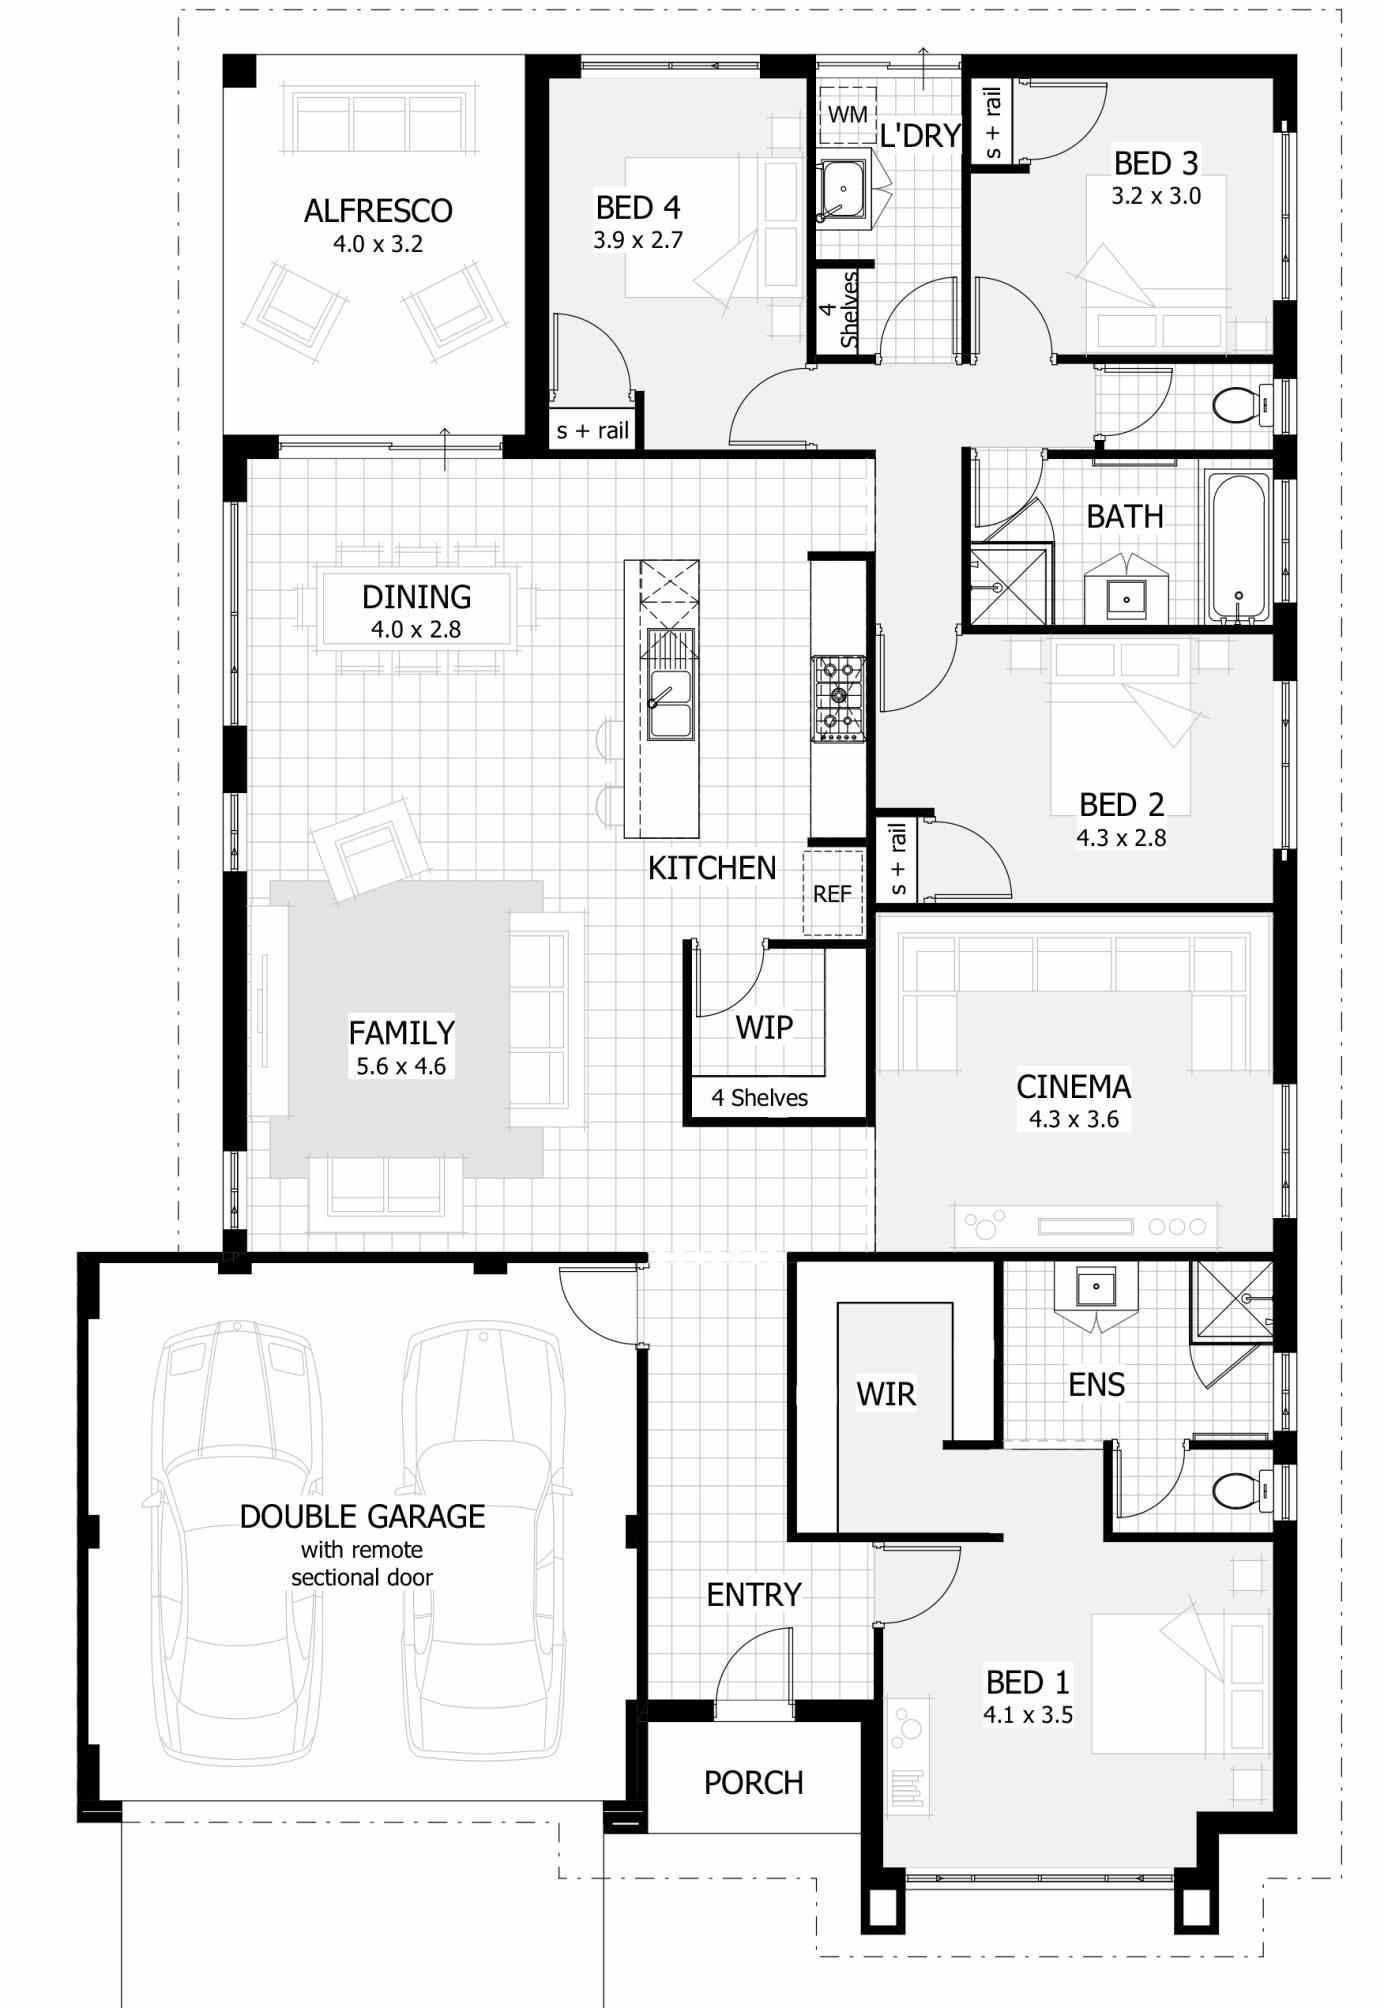 Awesome One Story House Plans 4 Bedroom Lovely Single Story 4 Bedroom Farmhouse Plans Four Bedroom House Plans House Plans Australia Australian House Plans